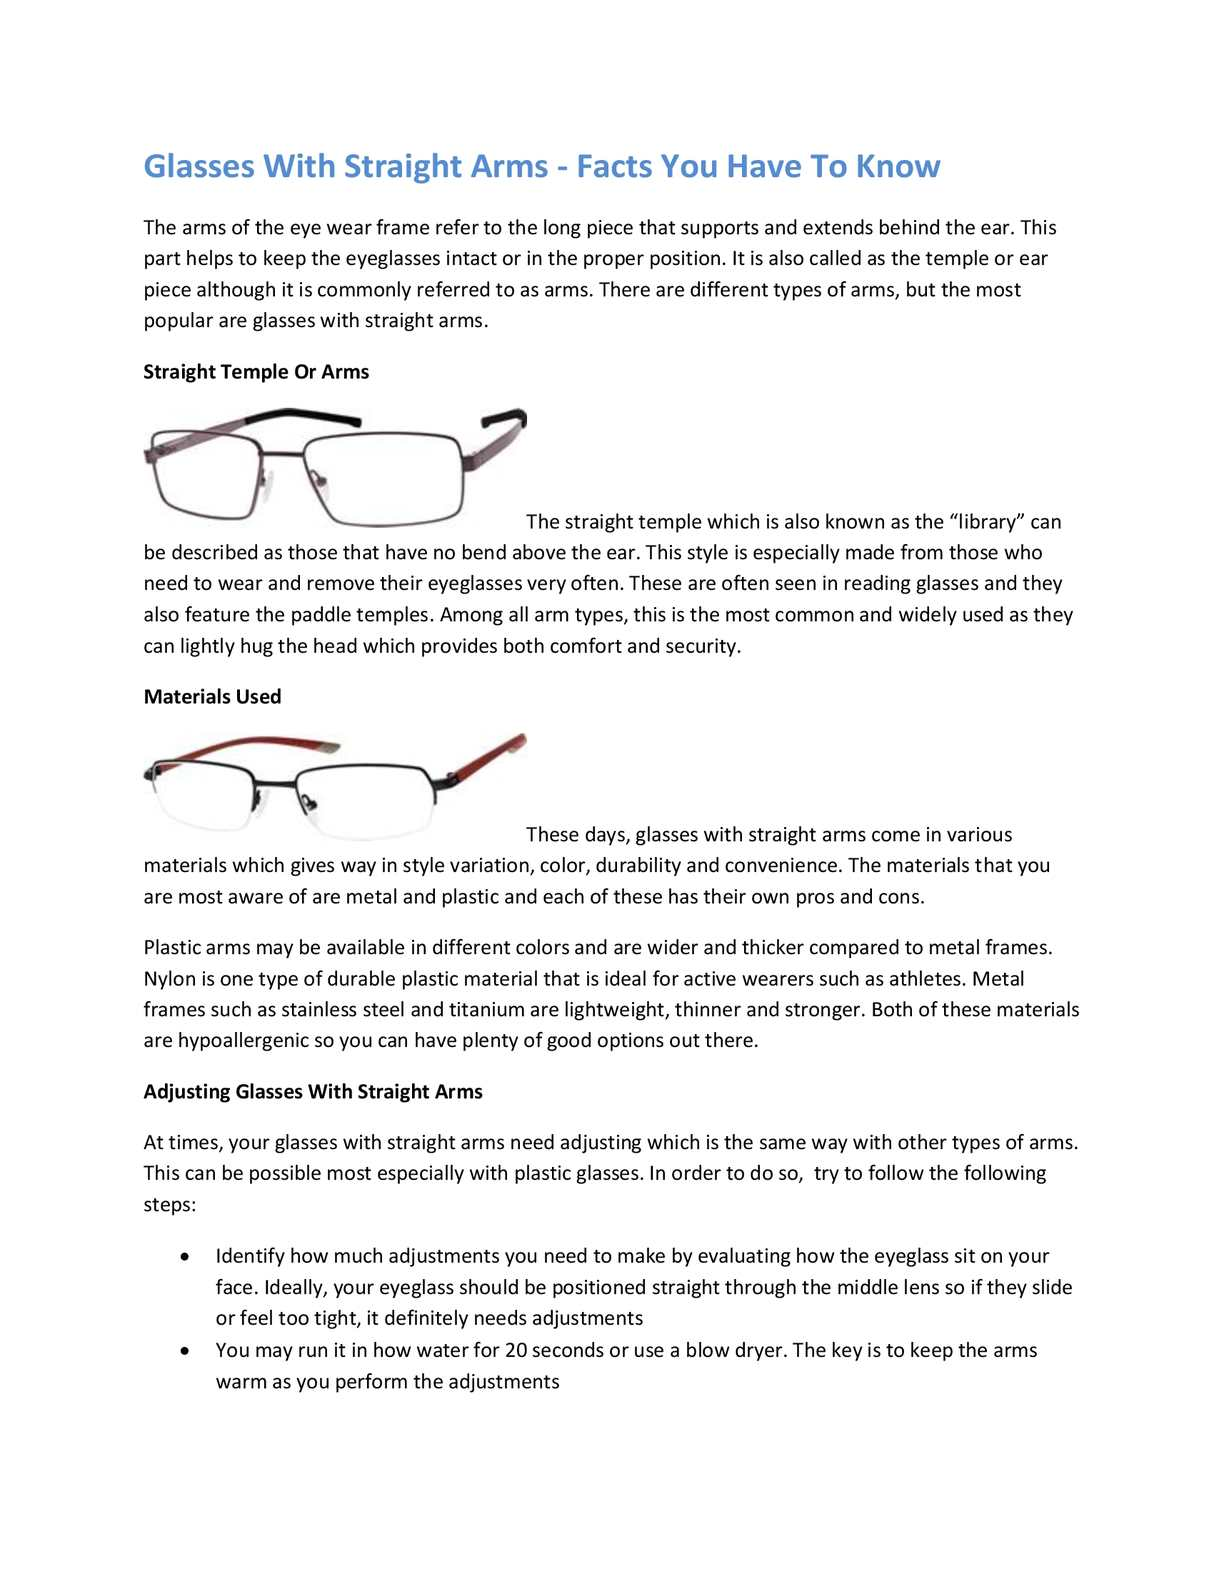 Calameo Glasses With Straight Arms Facts You Have To Know